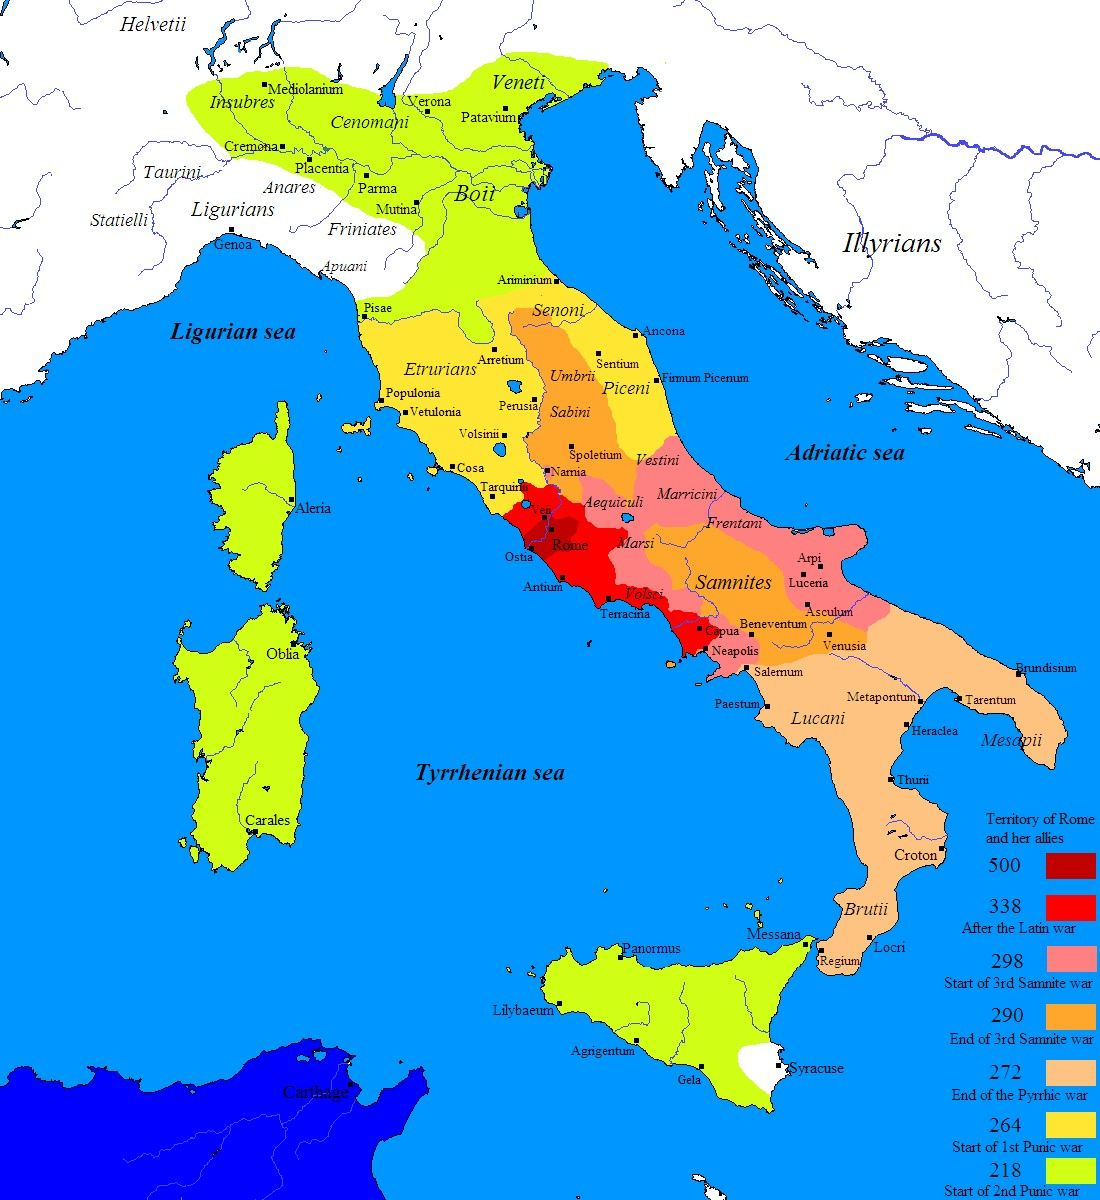 Roman Conquest Of Italy Through The Latin War Red Samnite Wars